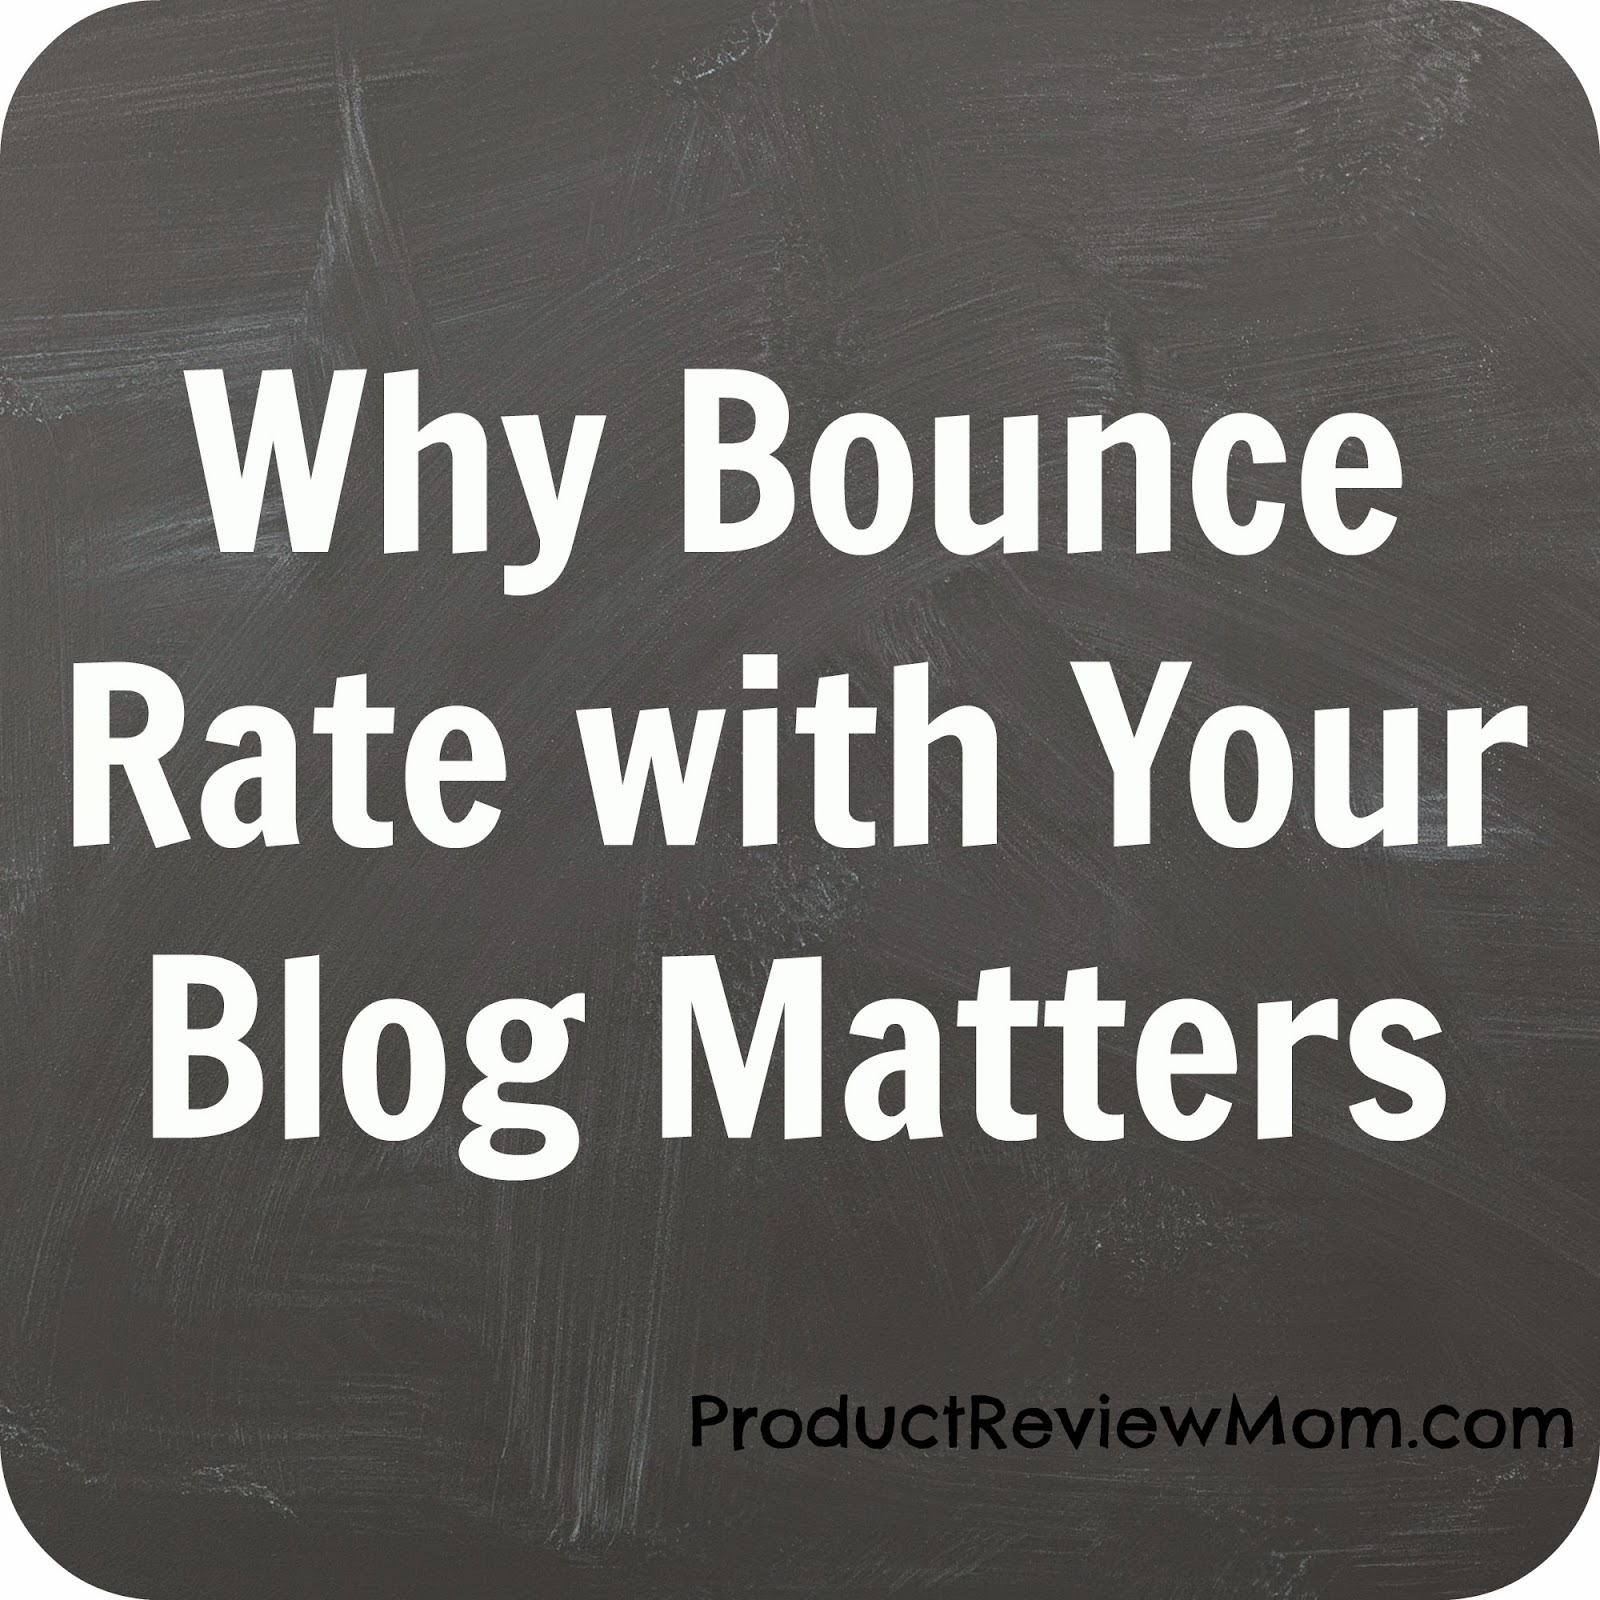 Why Bounce Rate with Your Blog Matters  via www.productreviewmom.com